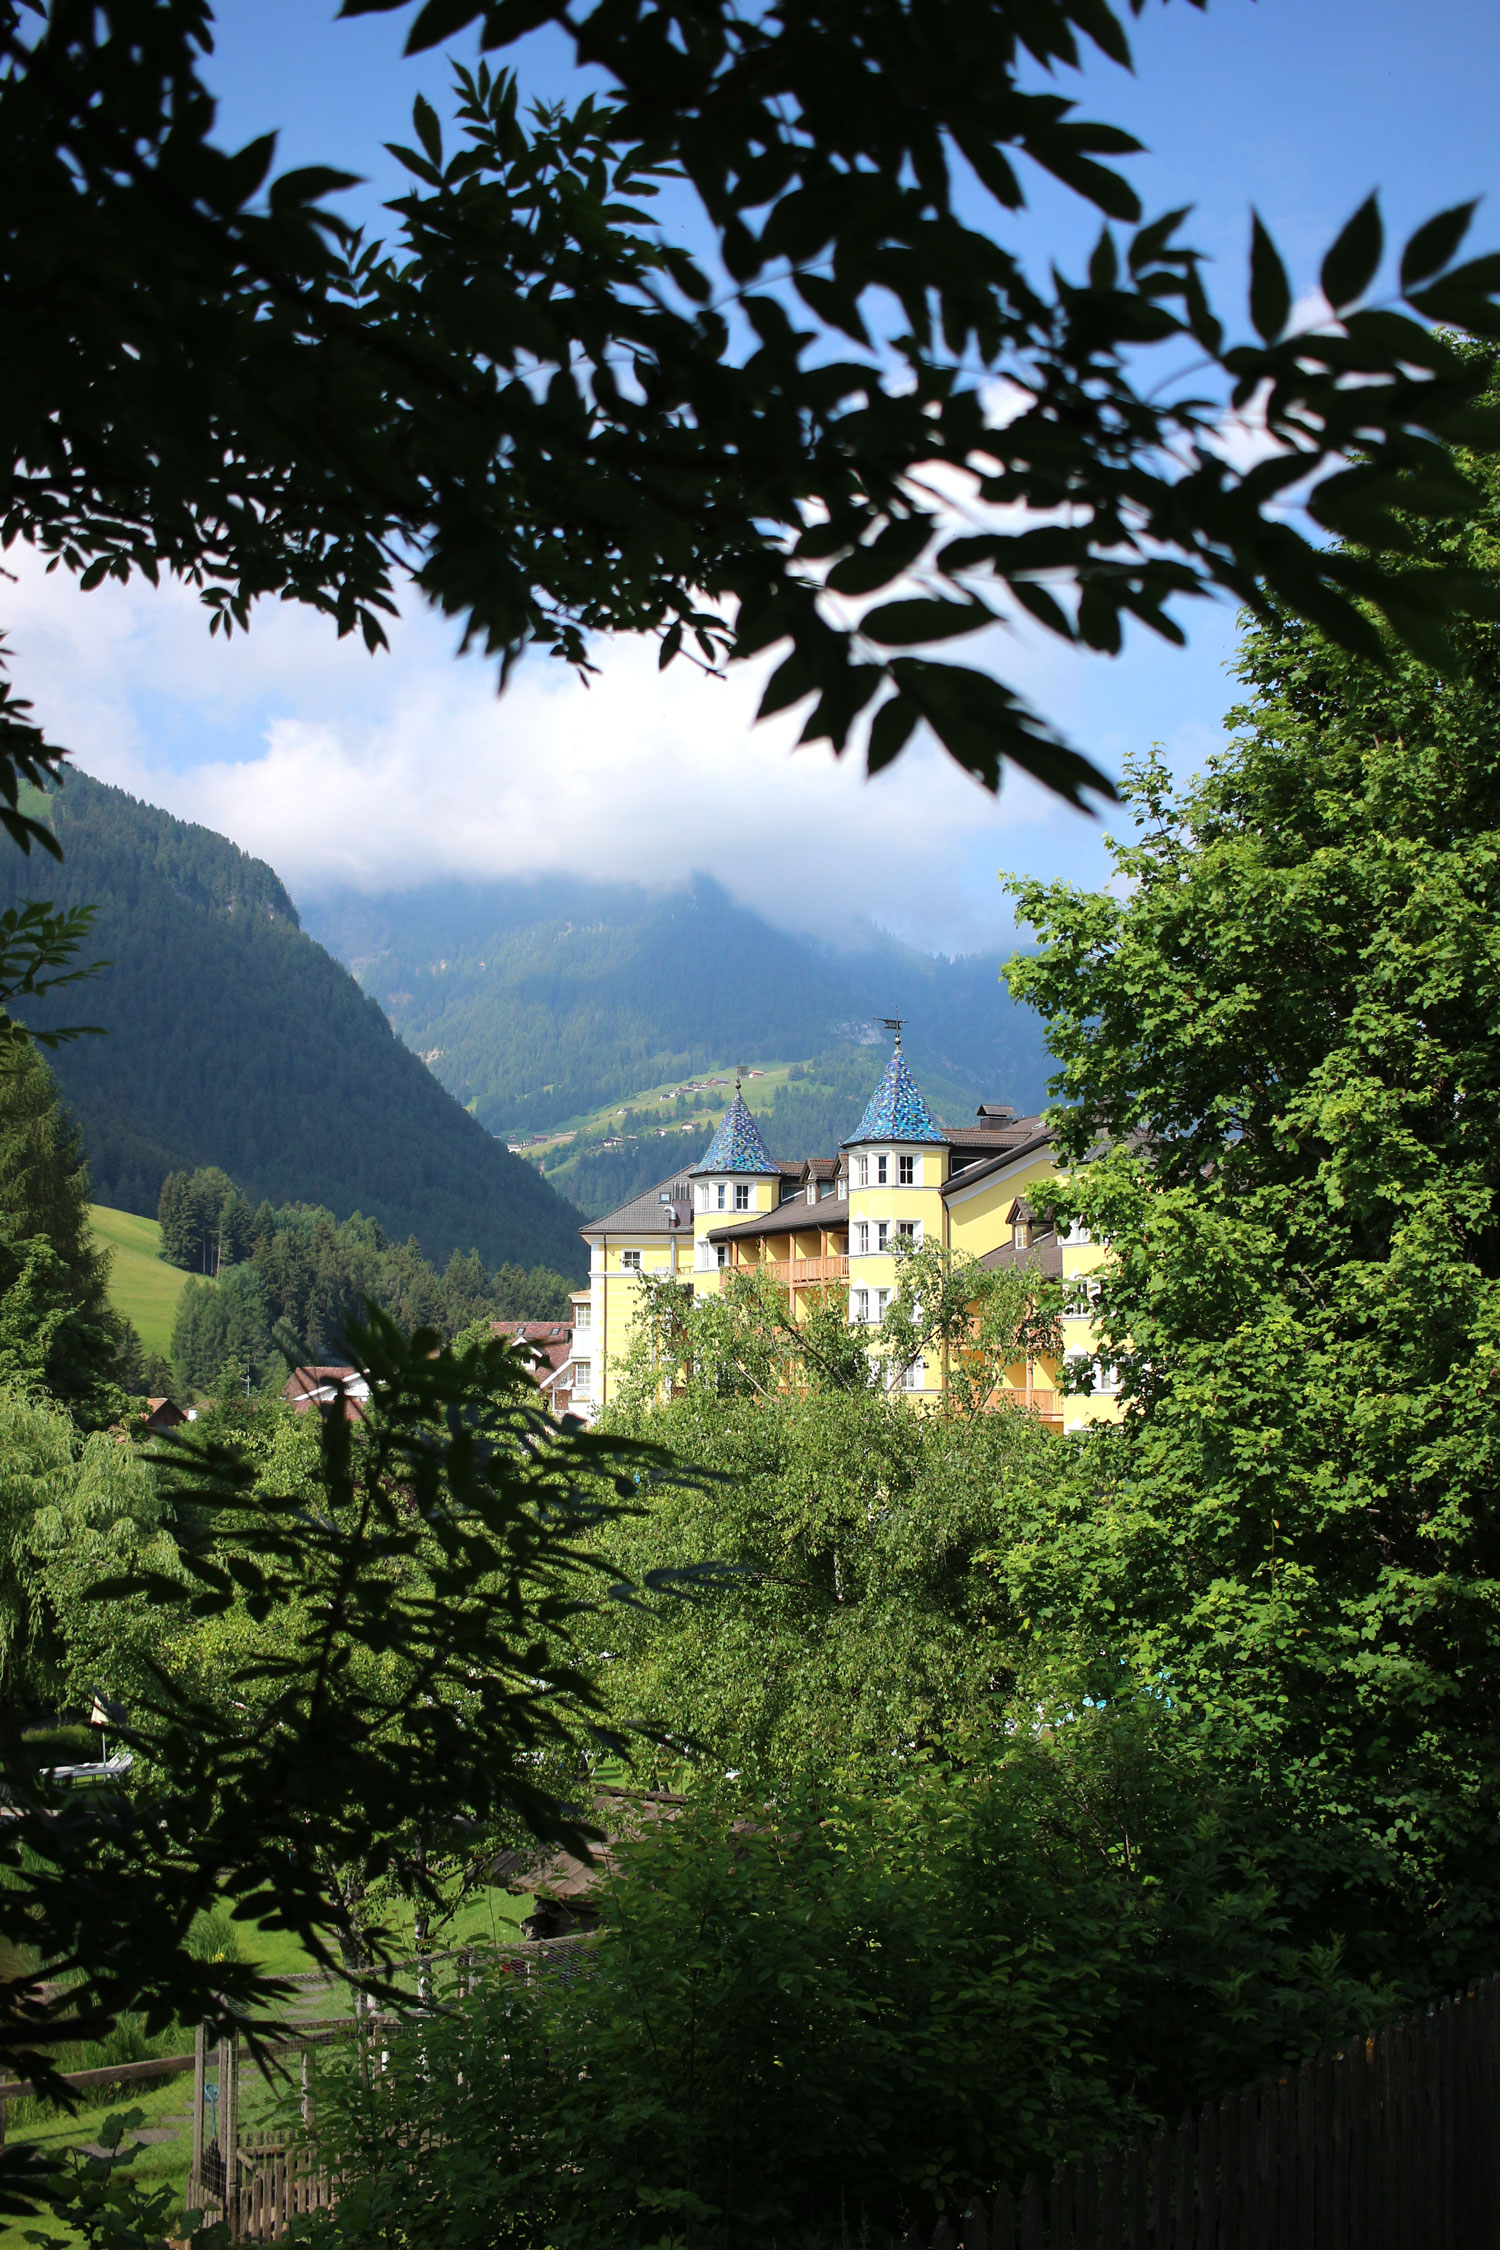 Italy-adler-dolomiti-hotel-spa-resort-review-travel-blogger-14